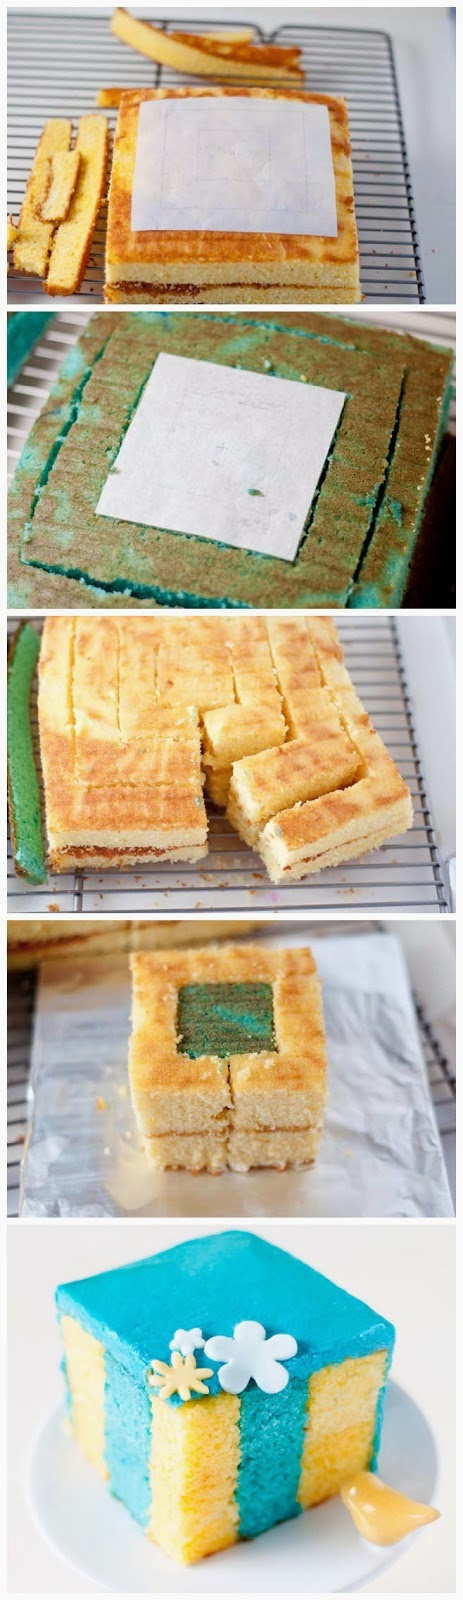 How to Make a Vertical Layer Cake